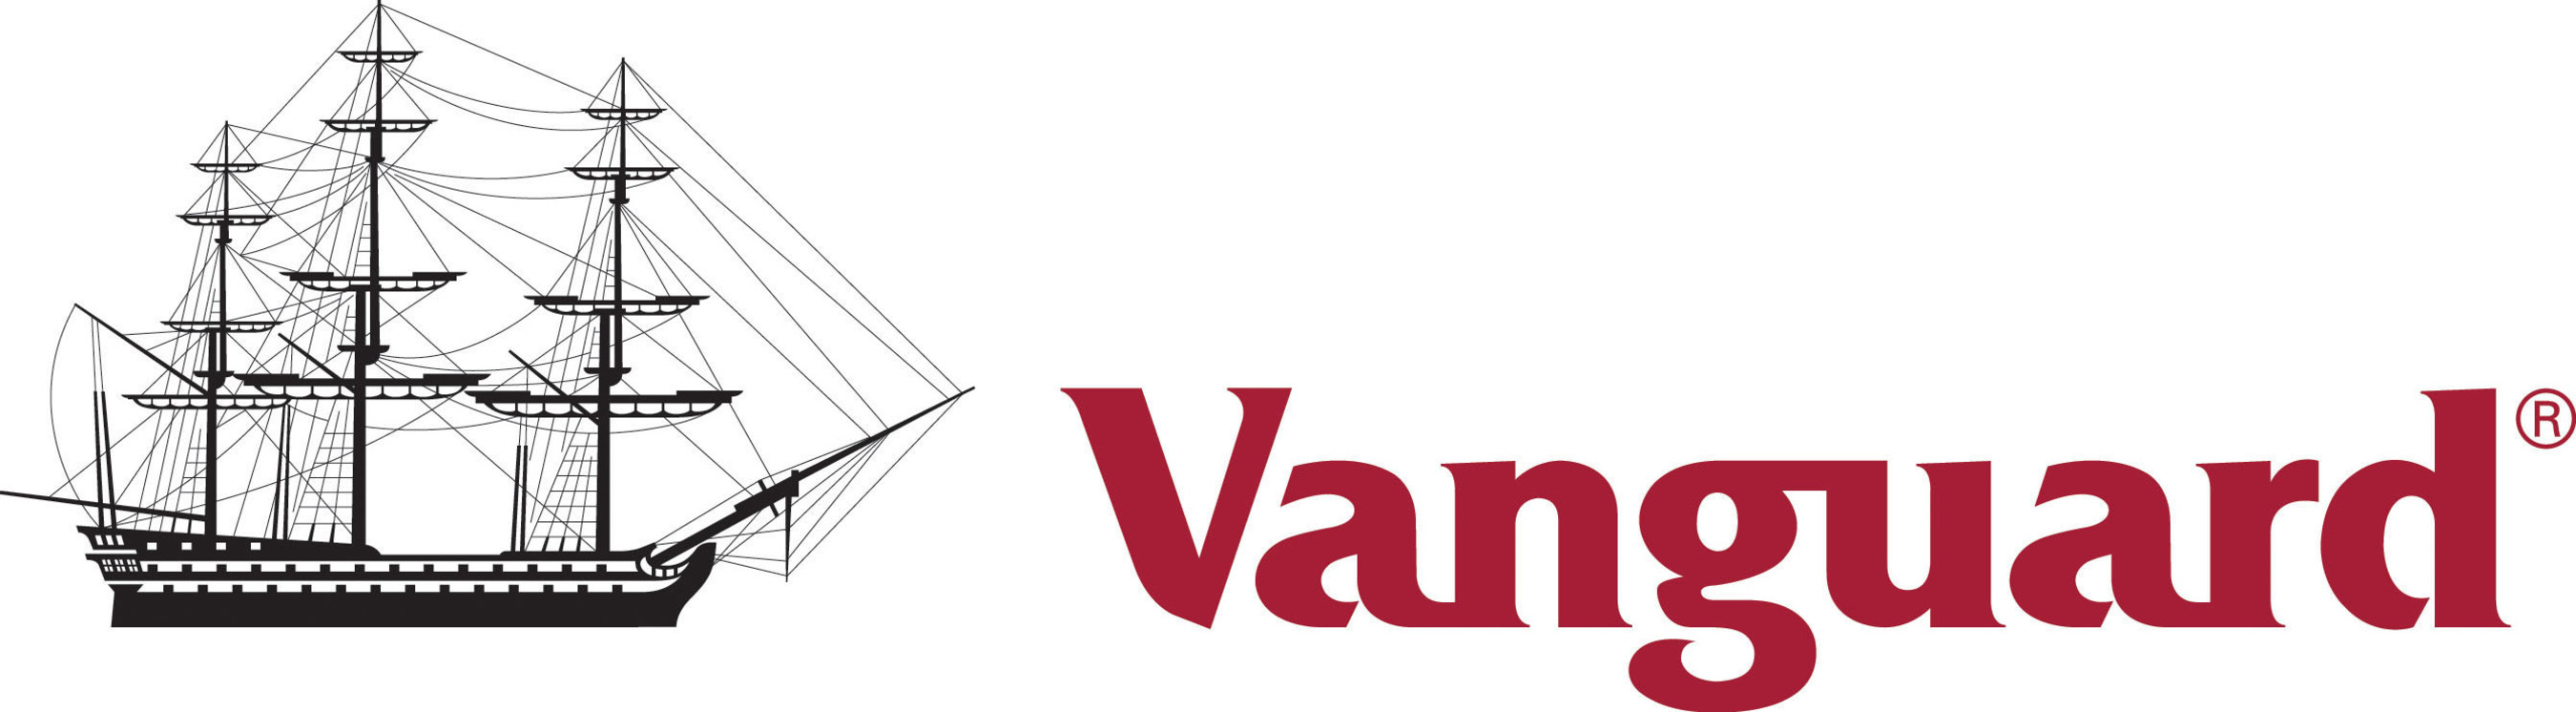 Vanguard 529 College Savings Plan logo